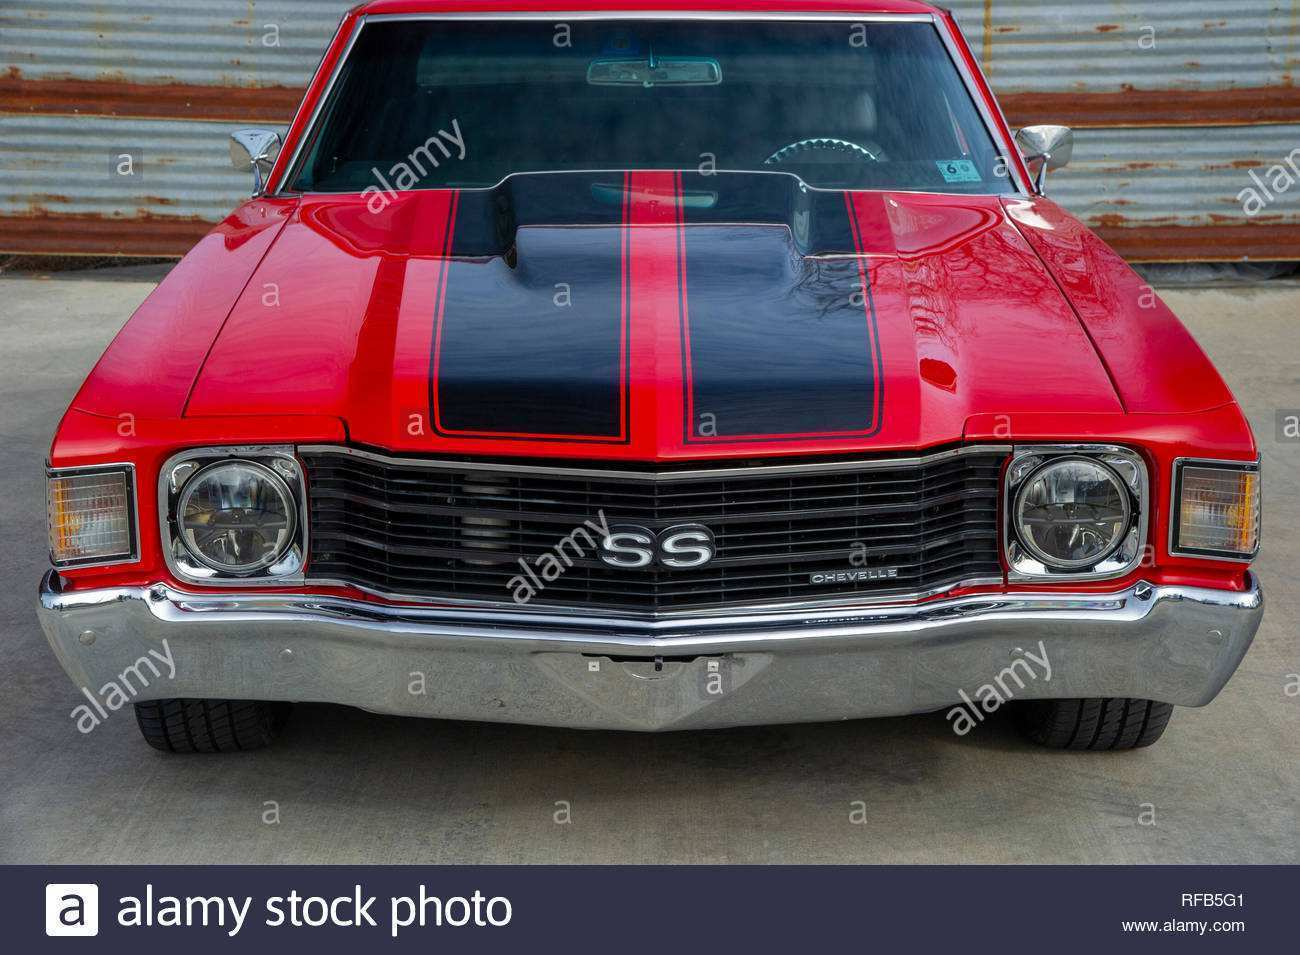 63 The 2019 Chevelle Ss Exterior And Interior